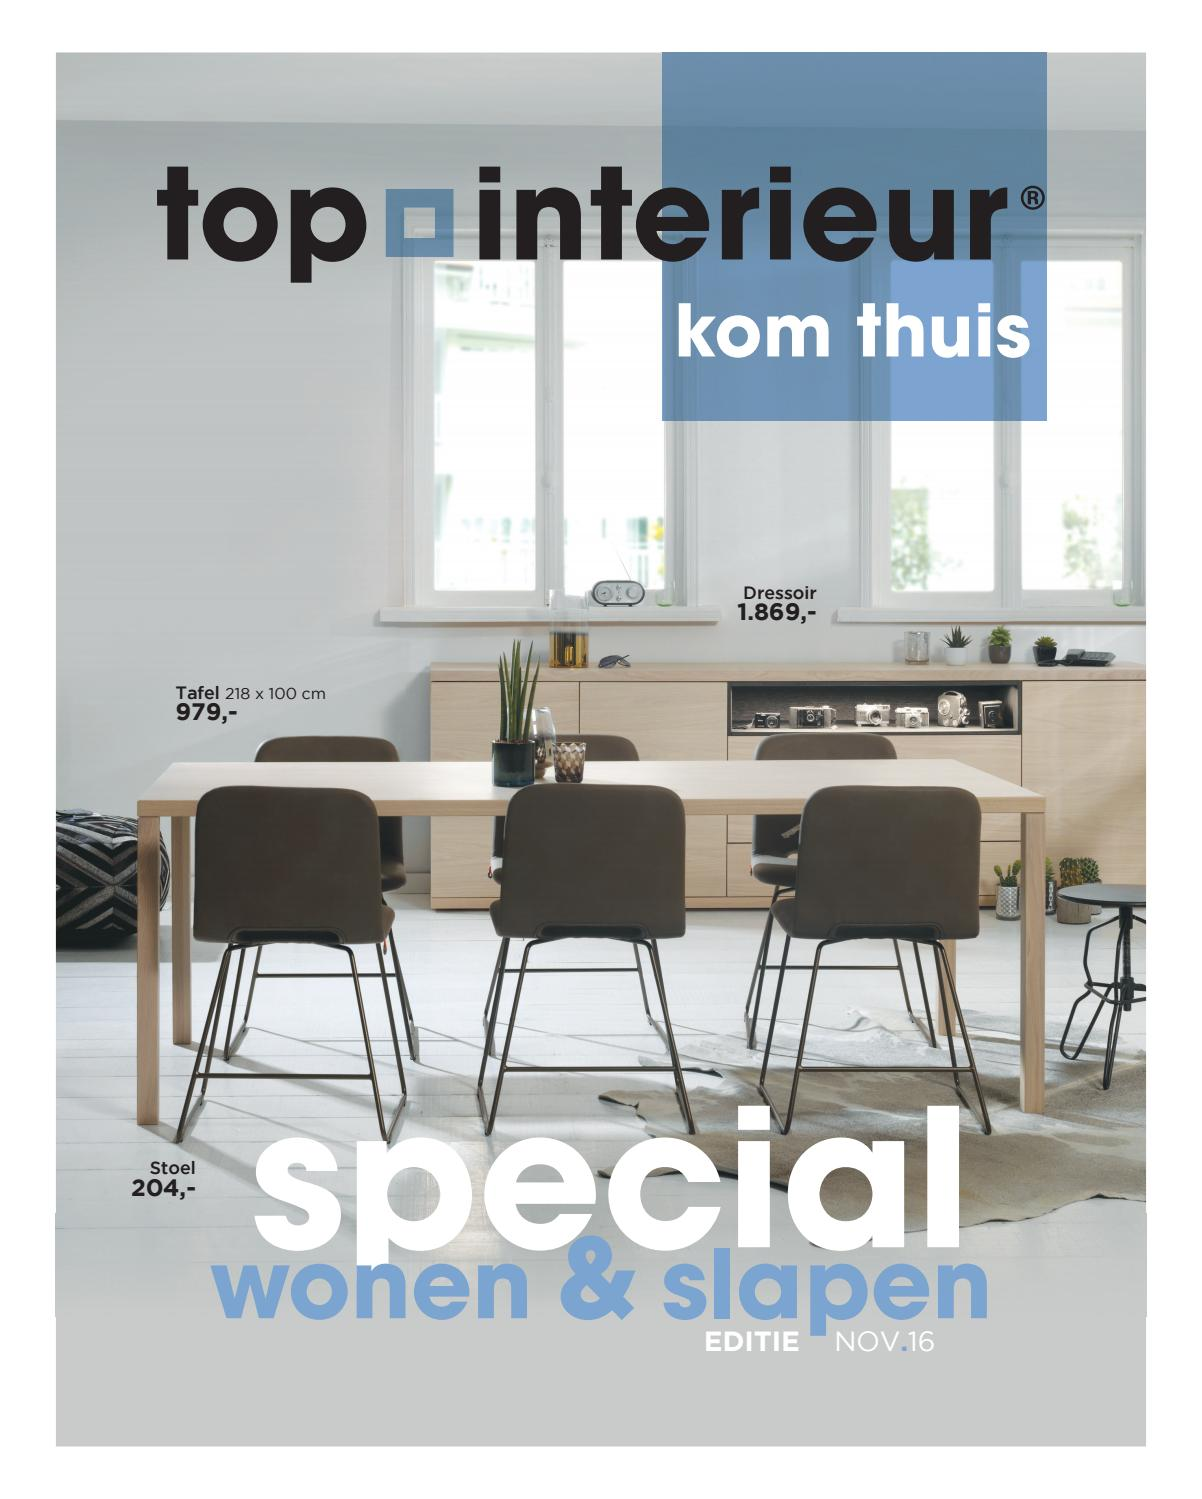 Top Interieur - Wonen & Slapen november 2016 by Topinterieur - issuu